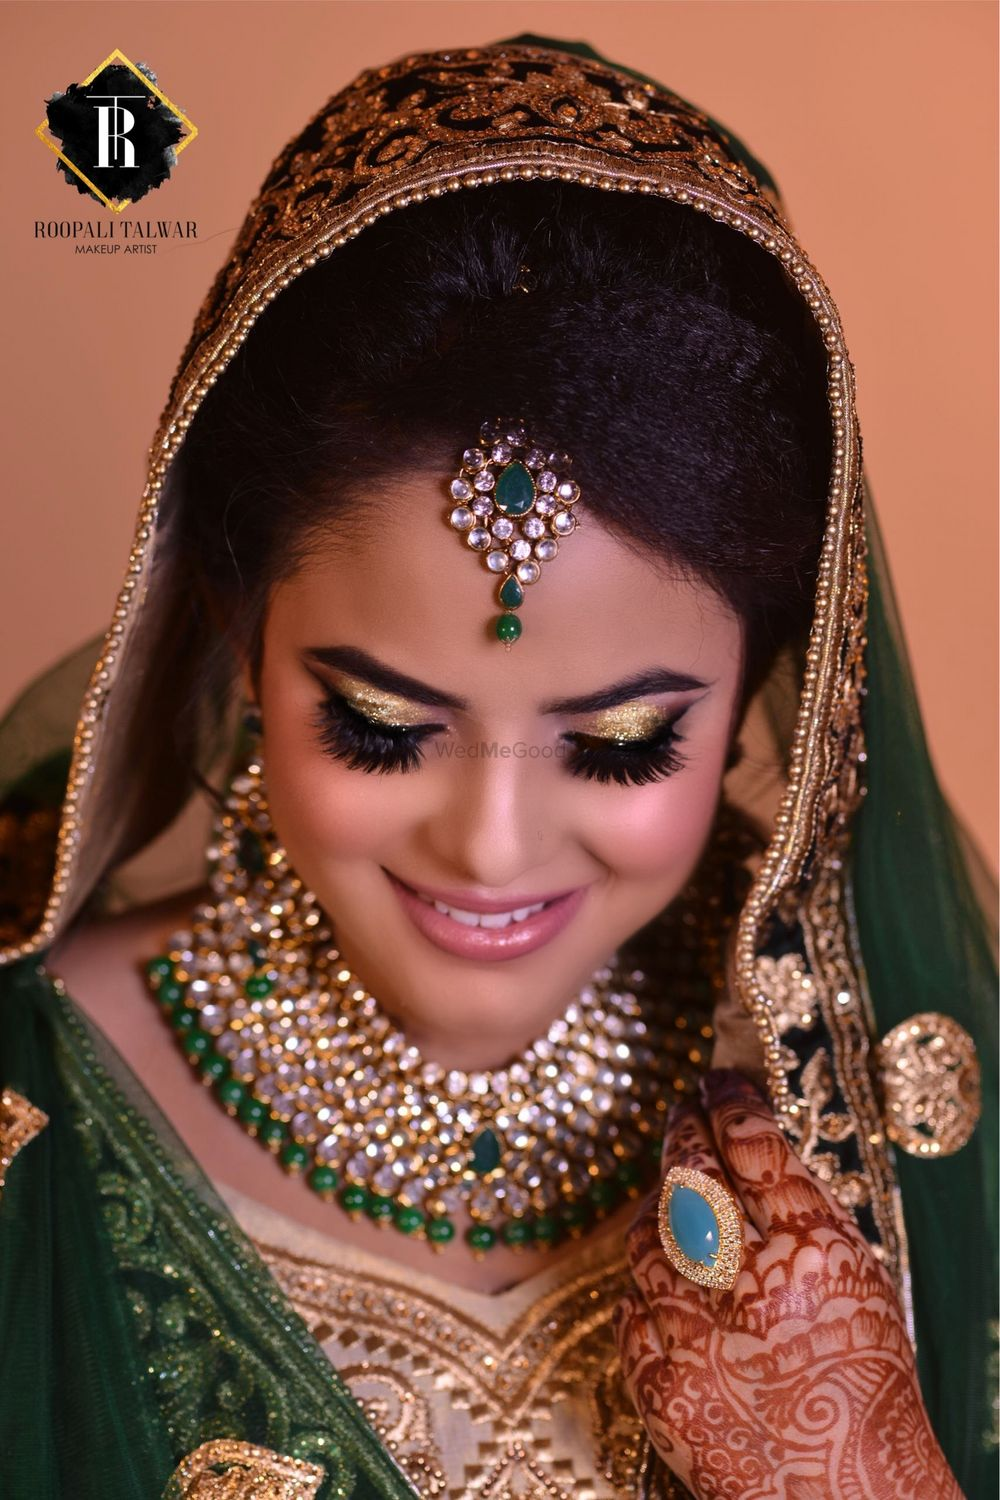 Photo From My Muslim Bride  - By Roopali Talwar Makeup Artist